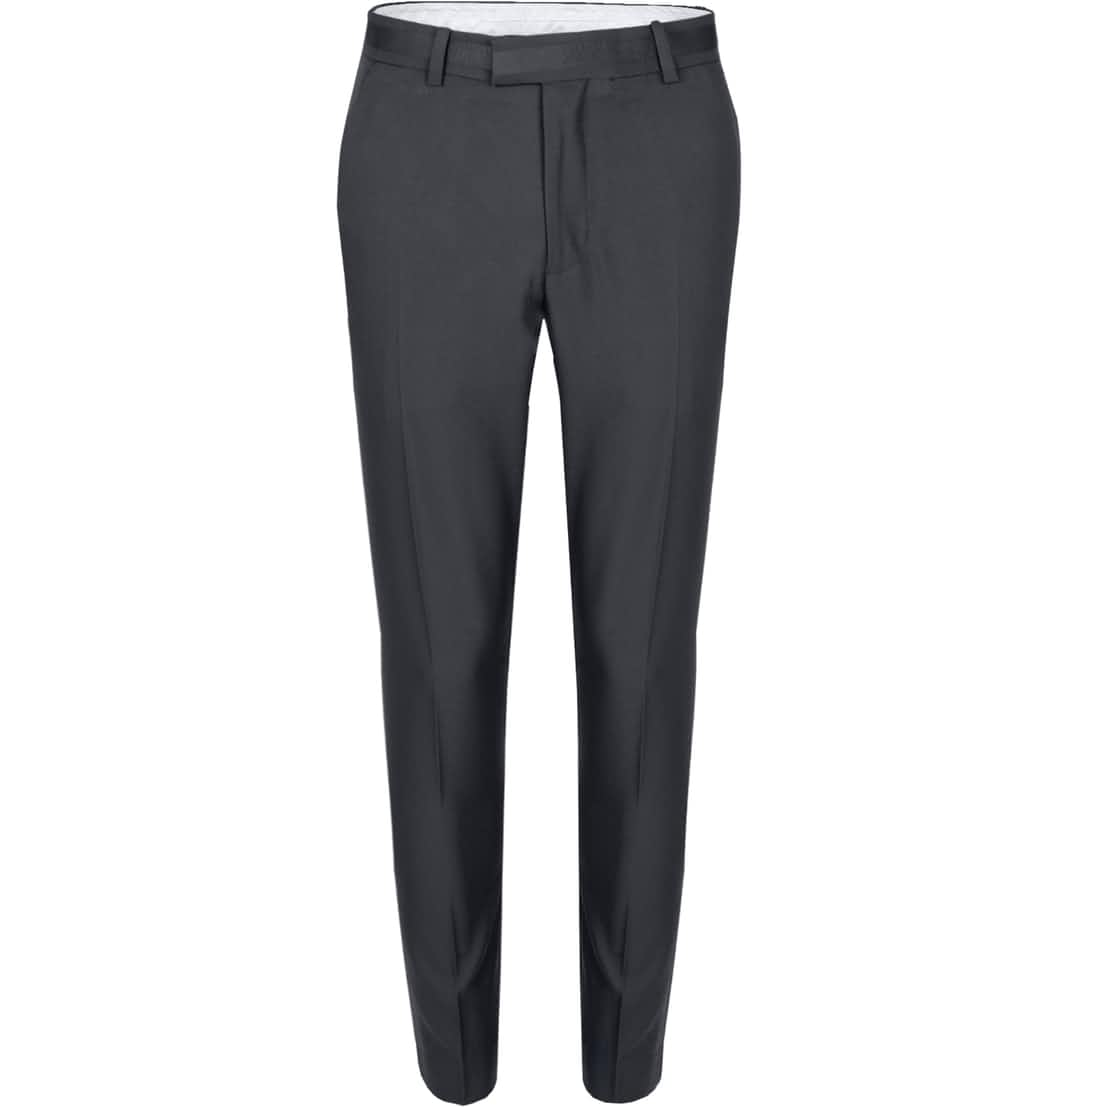 Straight Leg Trousers Charcoal - SS20